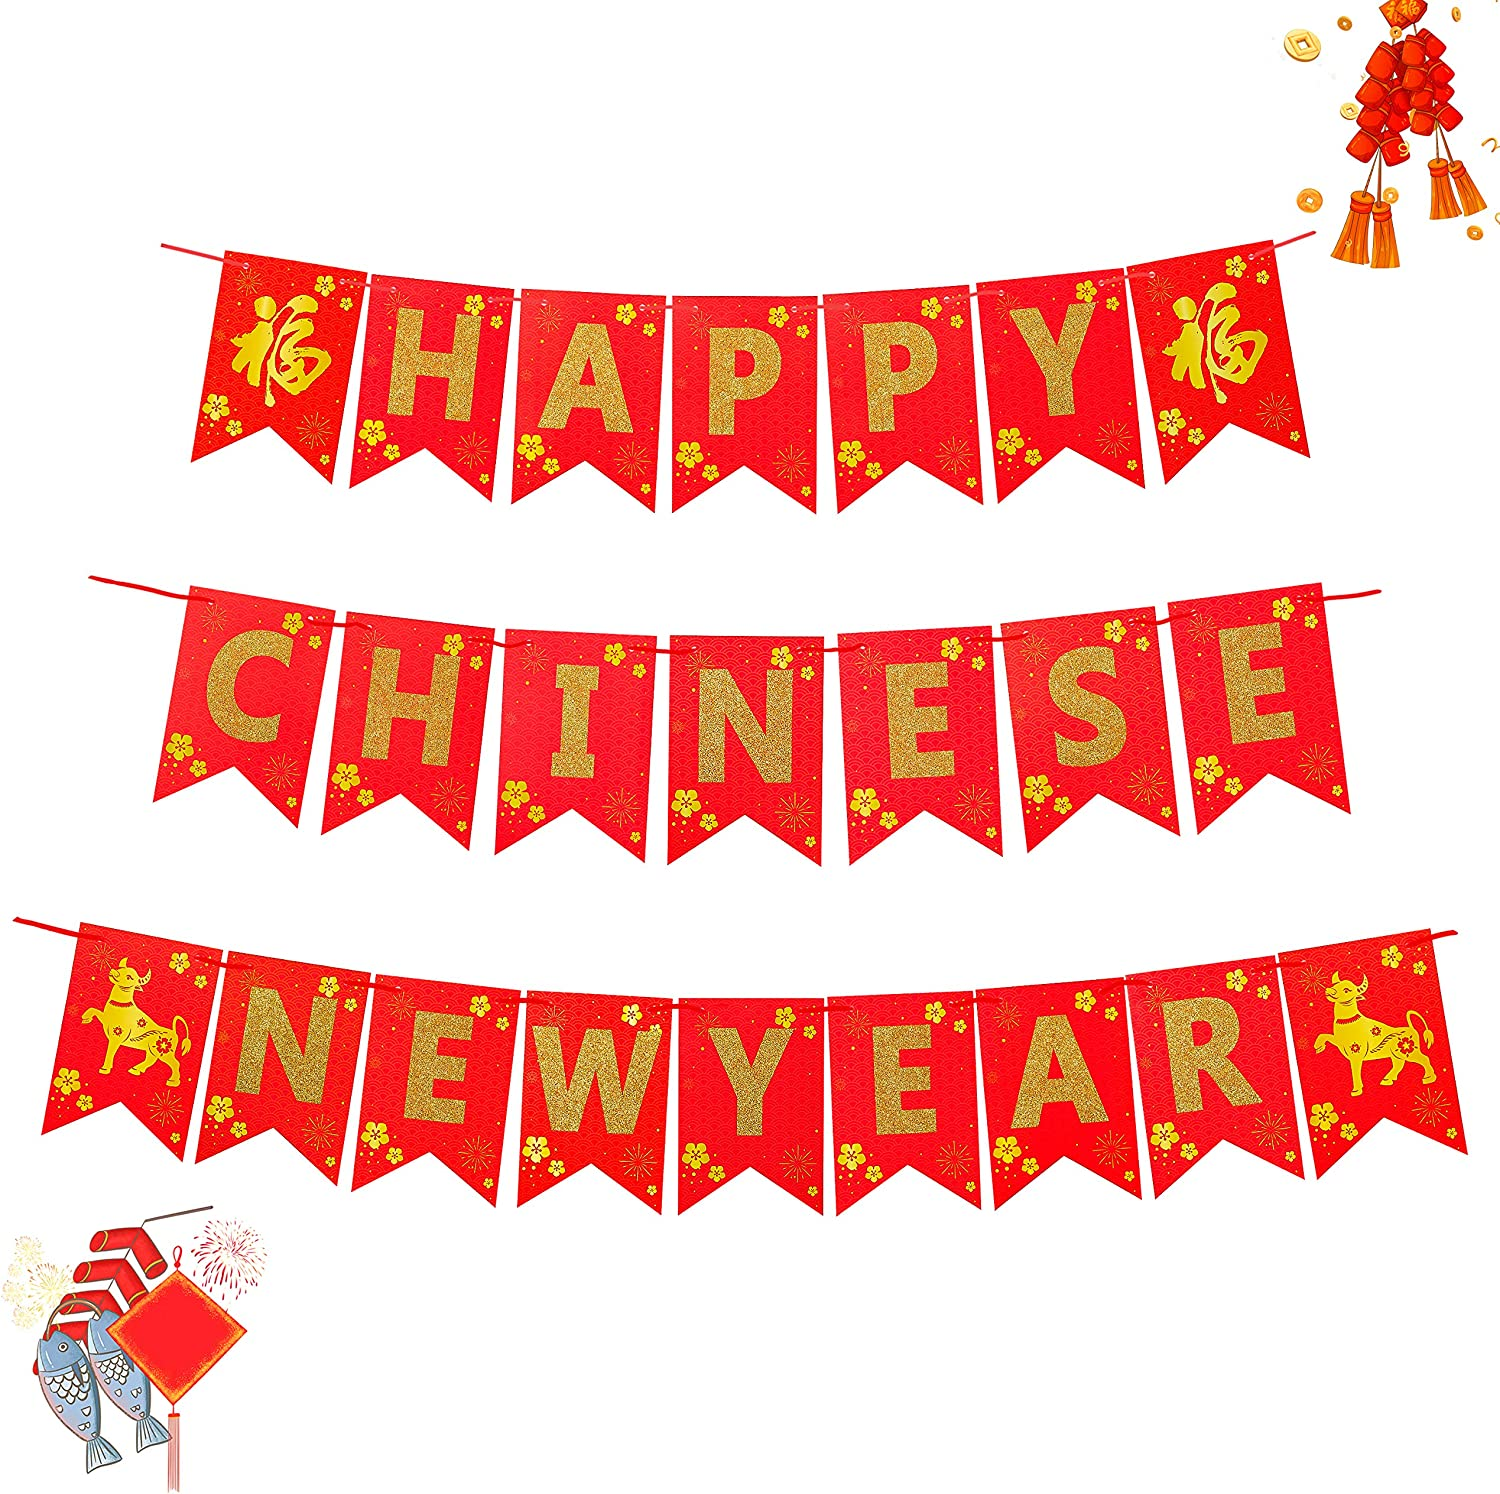 WATINC 3PCS 2021 Happy Chinese NEW YEAR Bunting Banner,Gold Glitter for NEW YEAR Festive Decorations Party Supplies,Year of Ox Party Banner Classroom Home Decor,Photo Props Decor for Mantle Fireplace